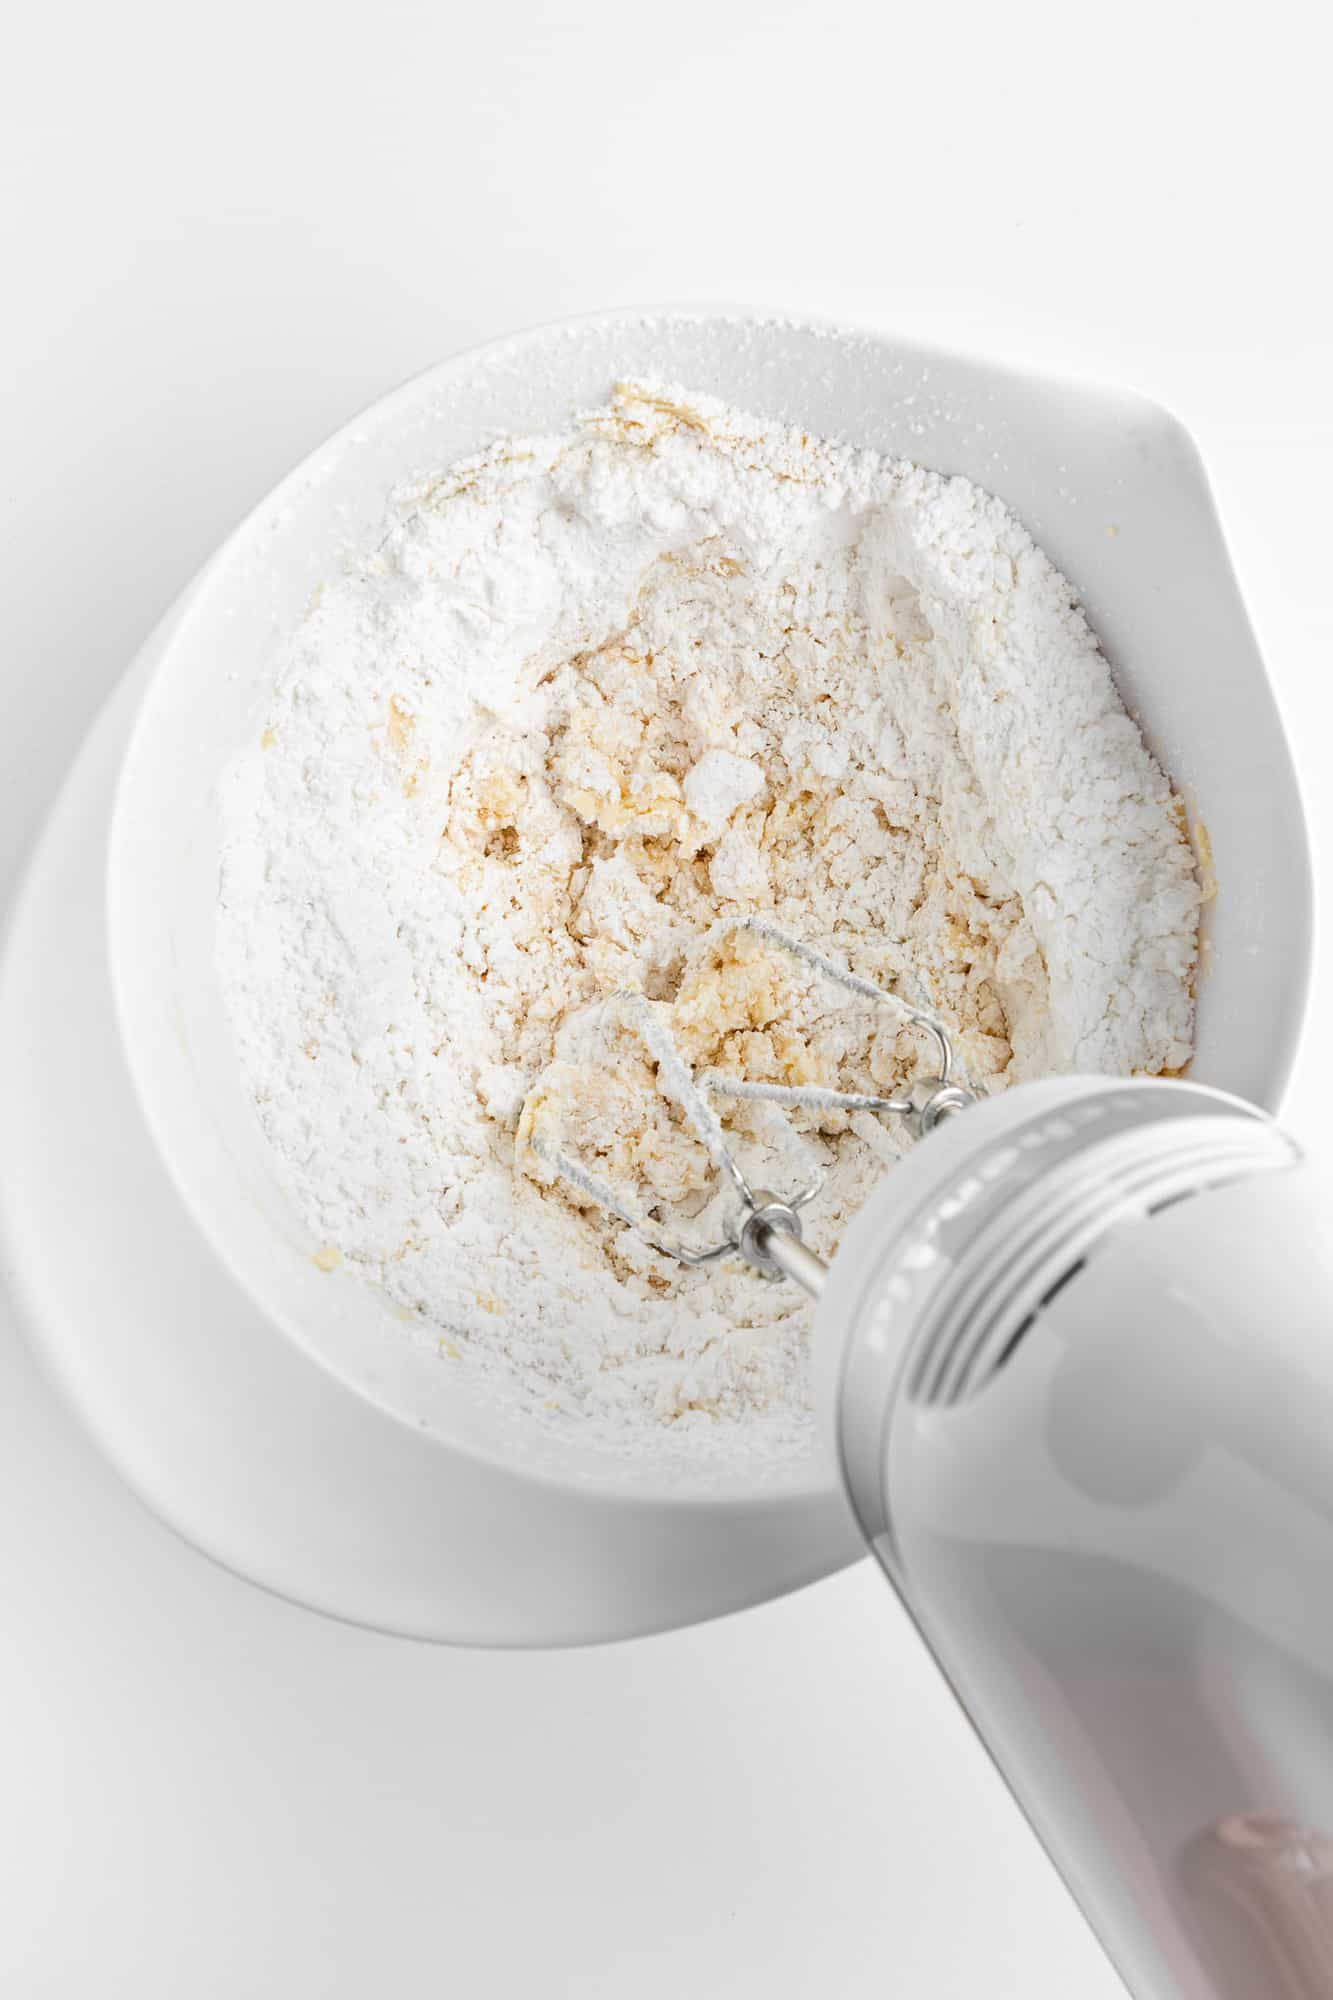 powdered sugar and vegan butter being mixed with a handheld electric mixer in a white bowl